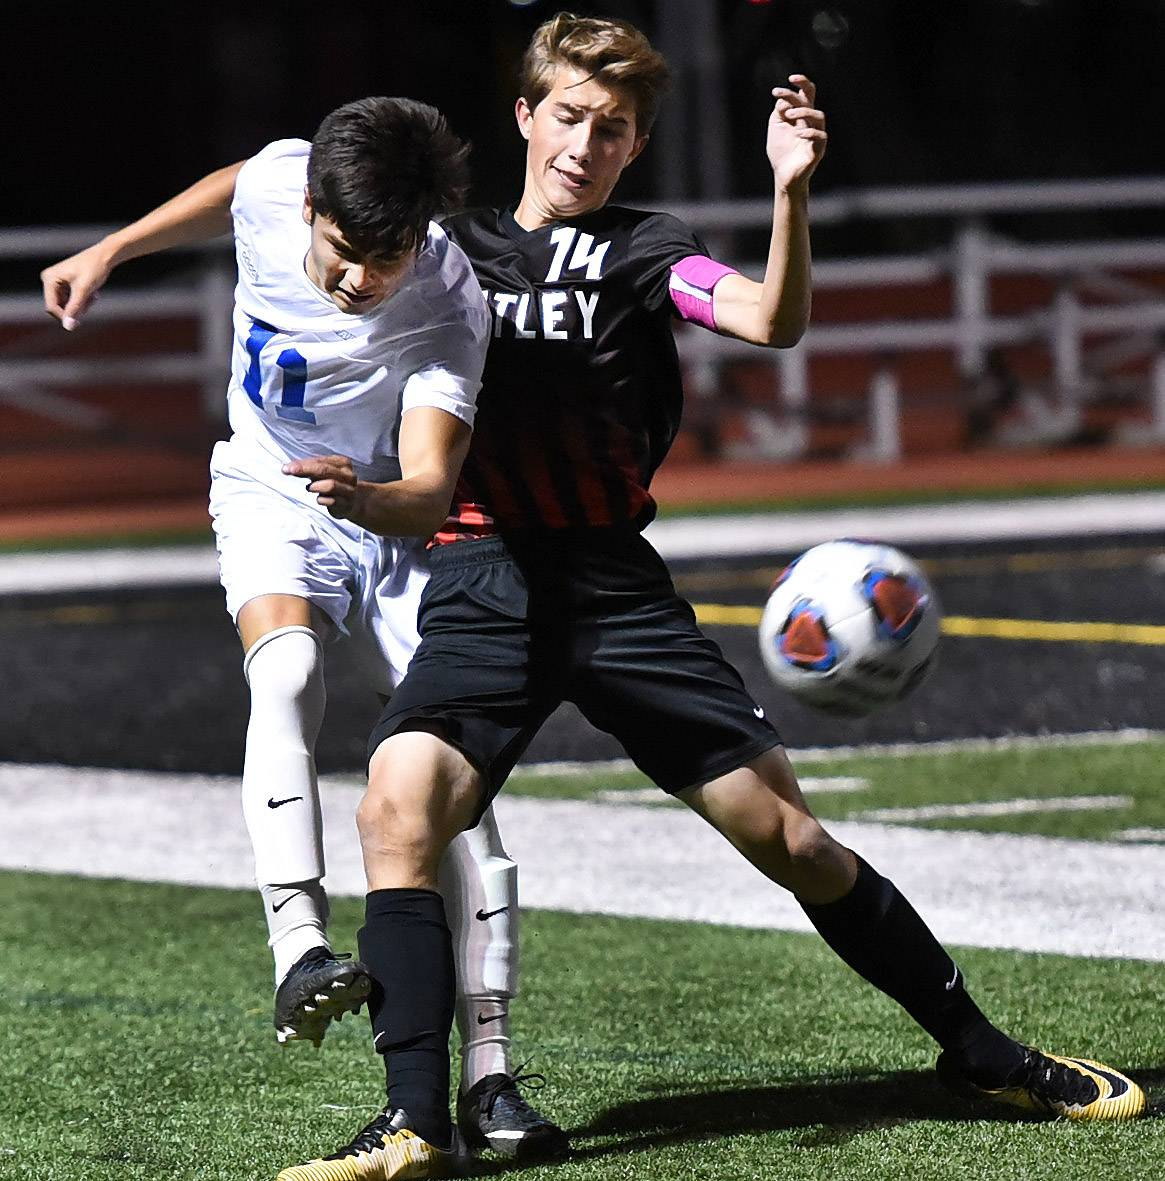 Larkin's Sergio Cruz battles for the ball with Huntley's Drew Landoch during Larkin at Huntley regional soccer.